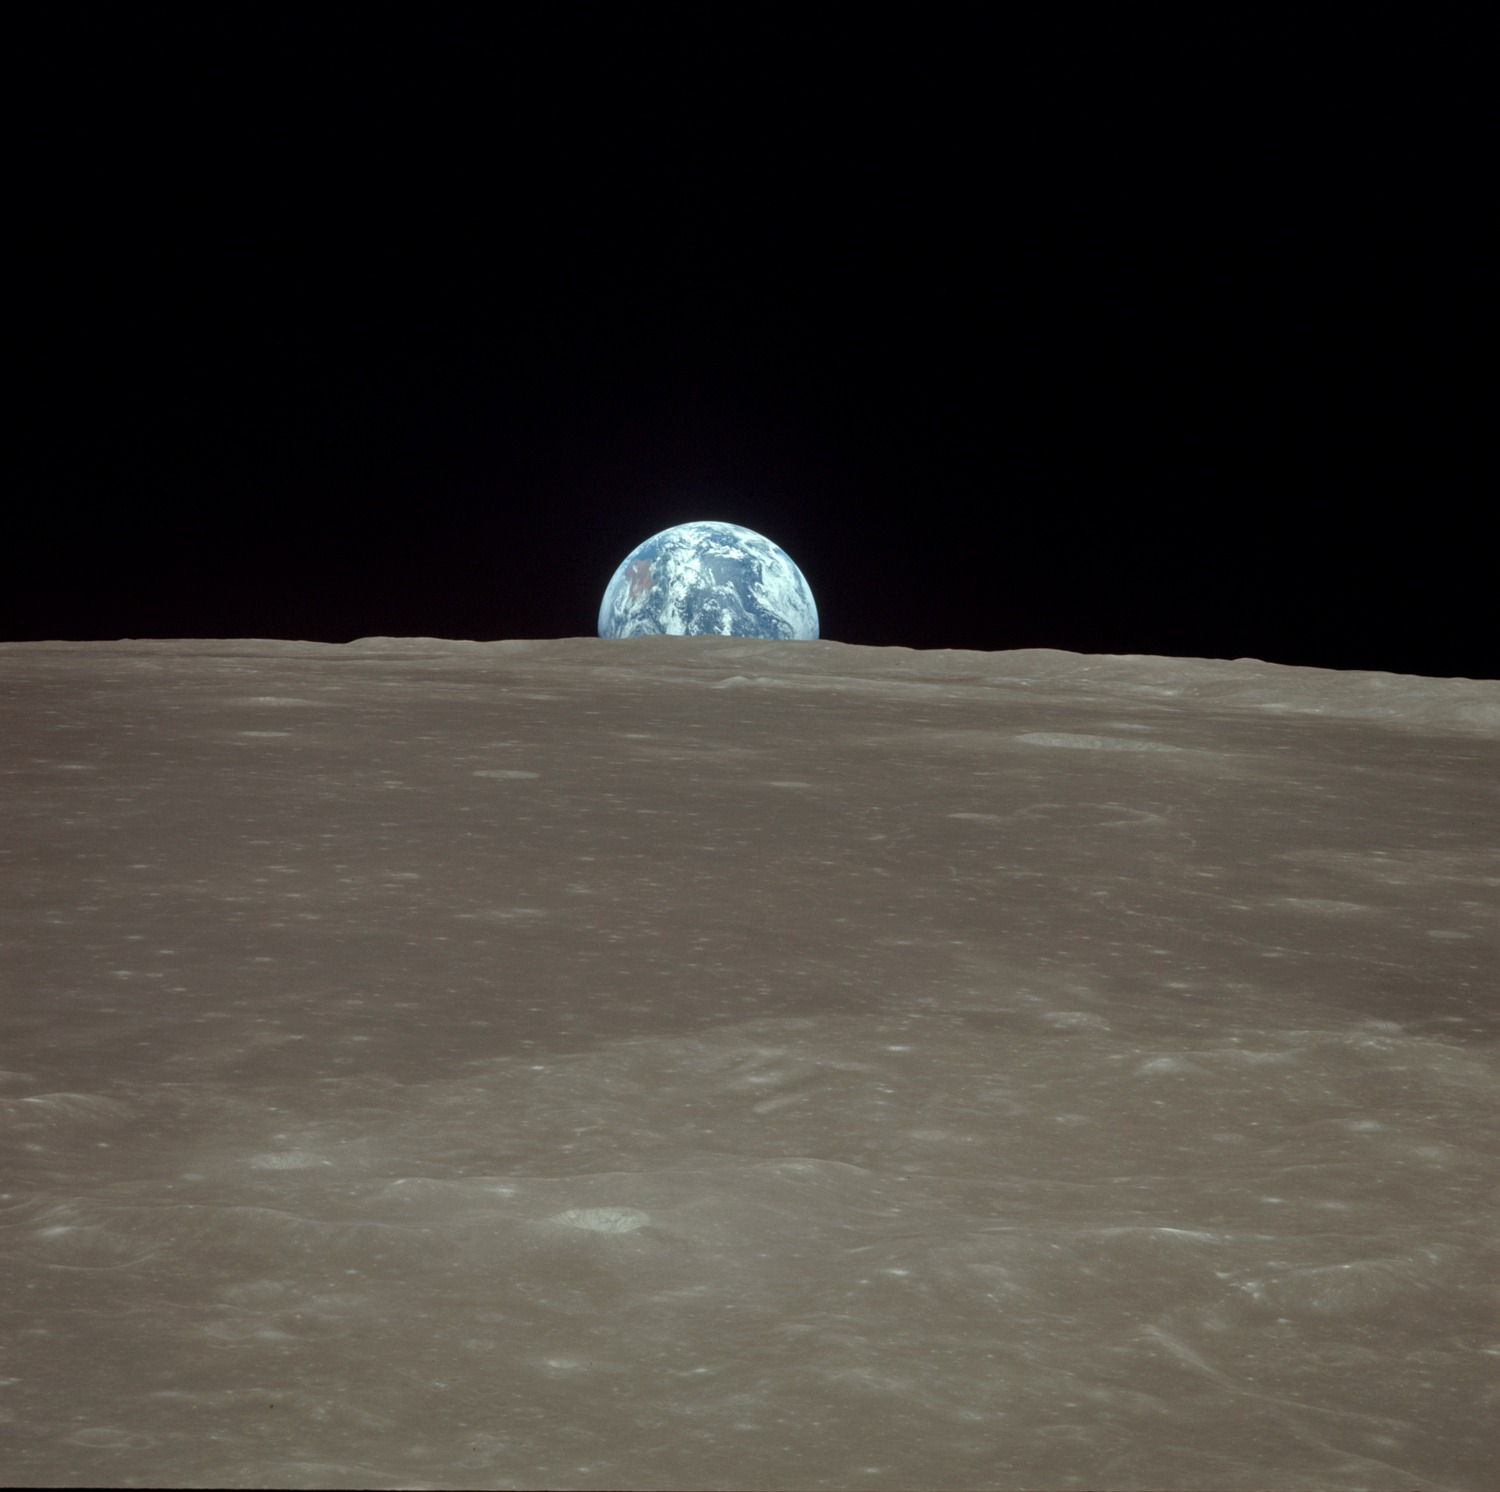 Earthrise from the Command Module Columbia. Australia is at the left, just above the lunar horizon. 20 July 1969. Credit: Neil Armstrong. NASA ID: AS11-44-6548